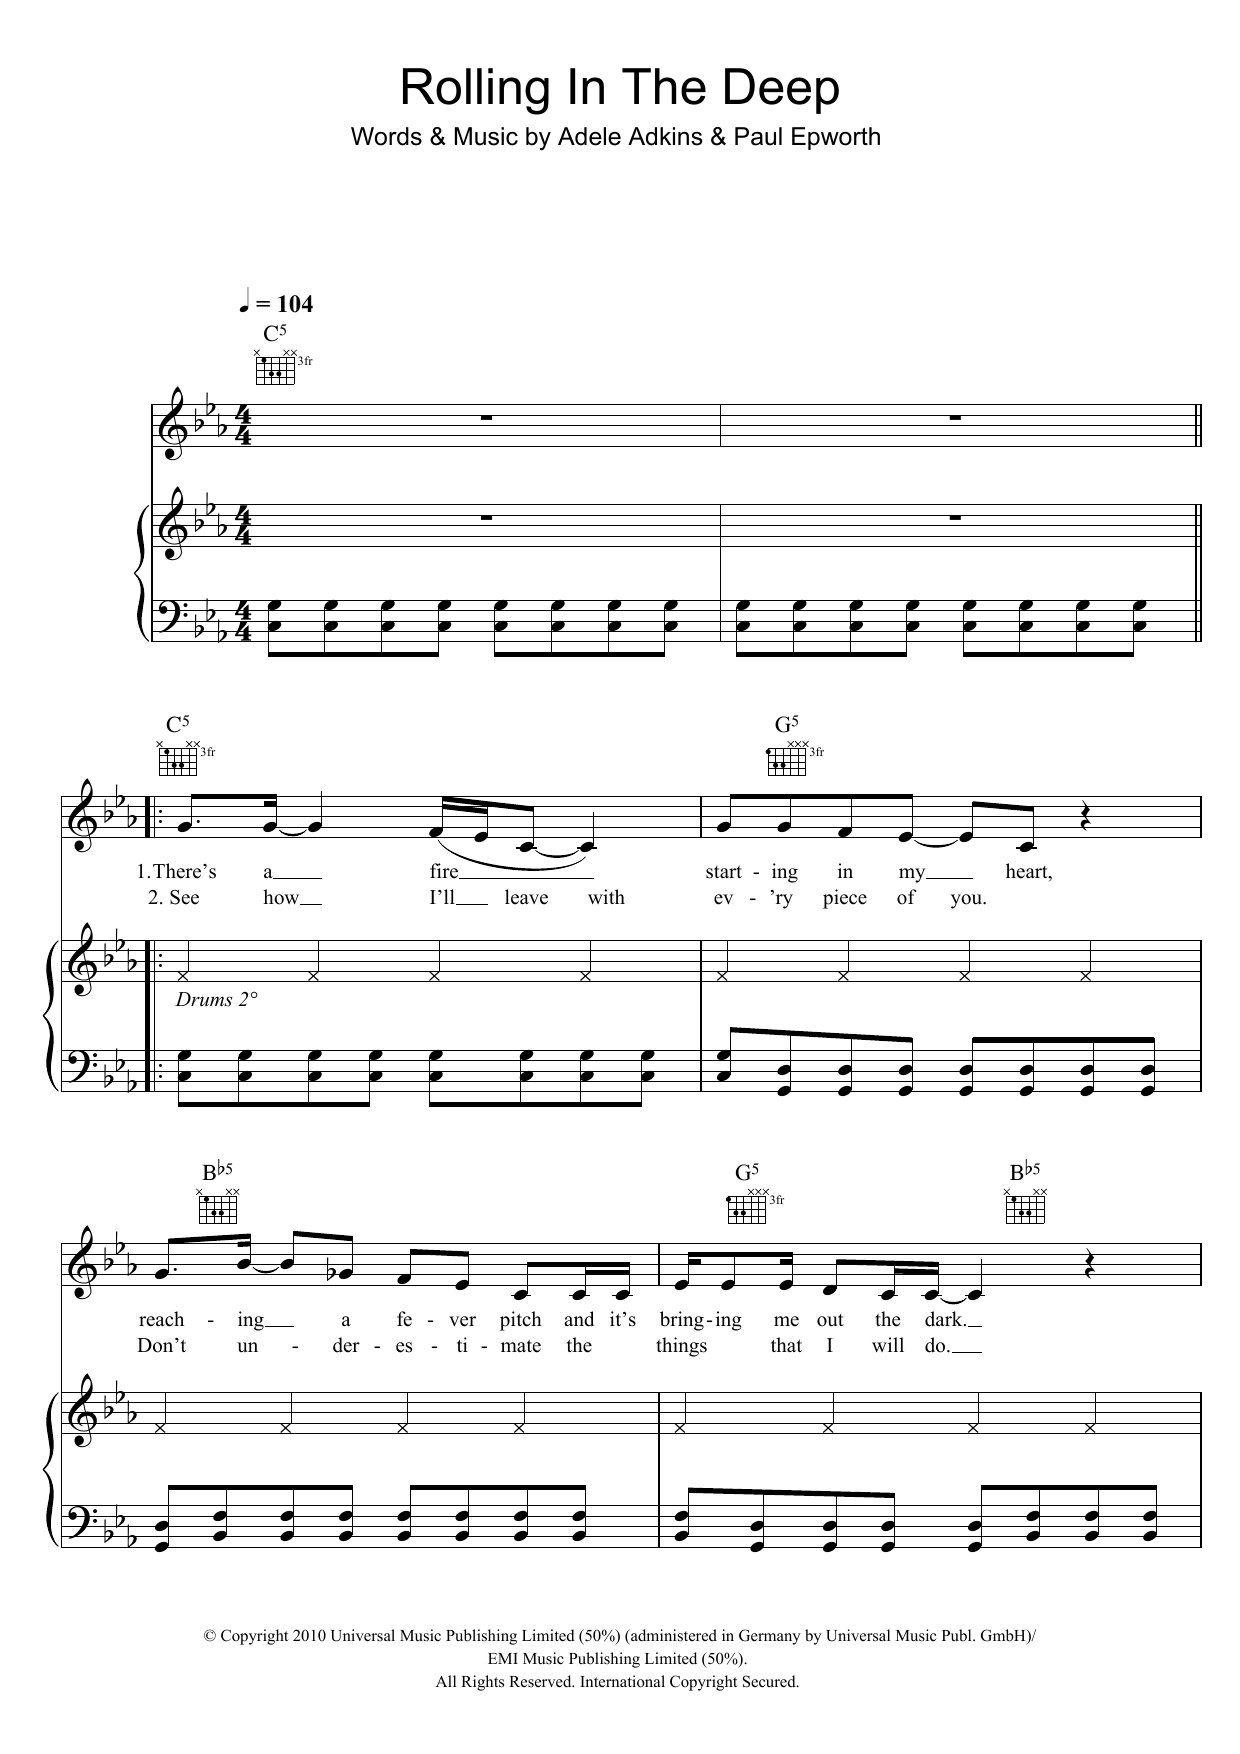 Rolling In The Deep sheet music for voice, piano or guitar by Paul Epworth